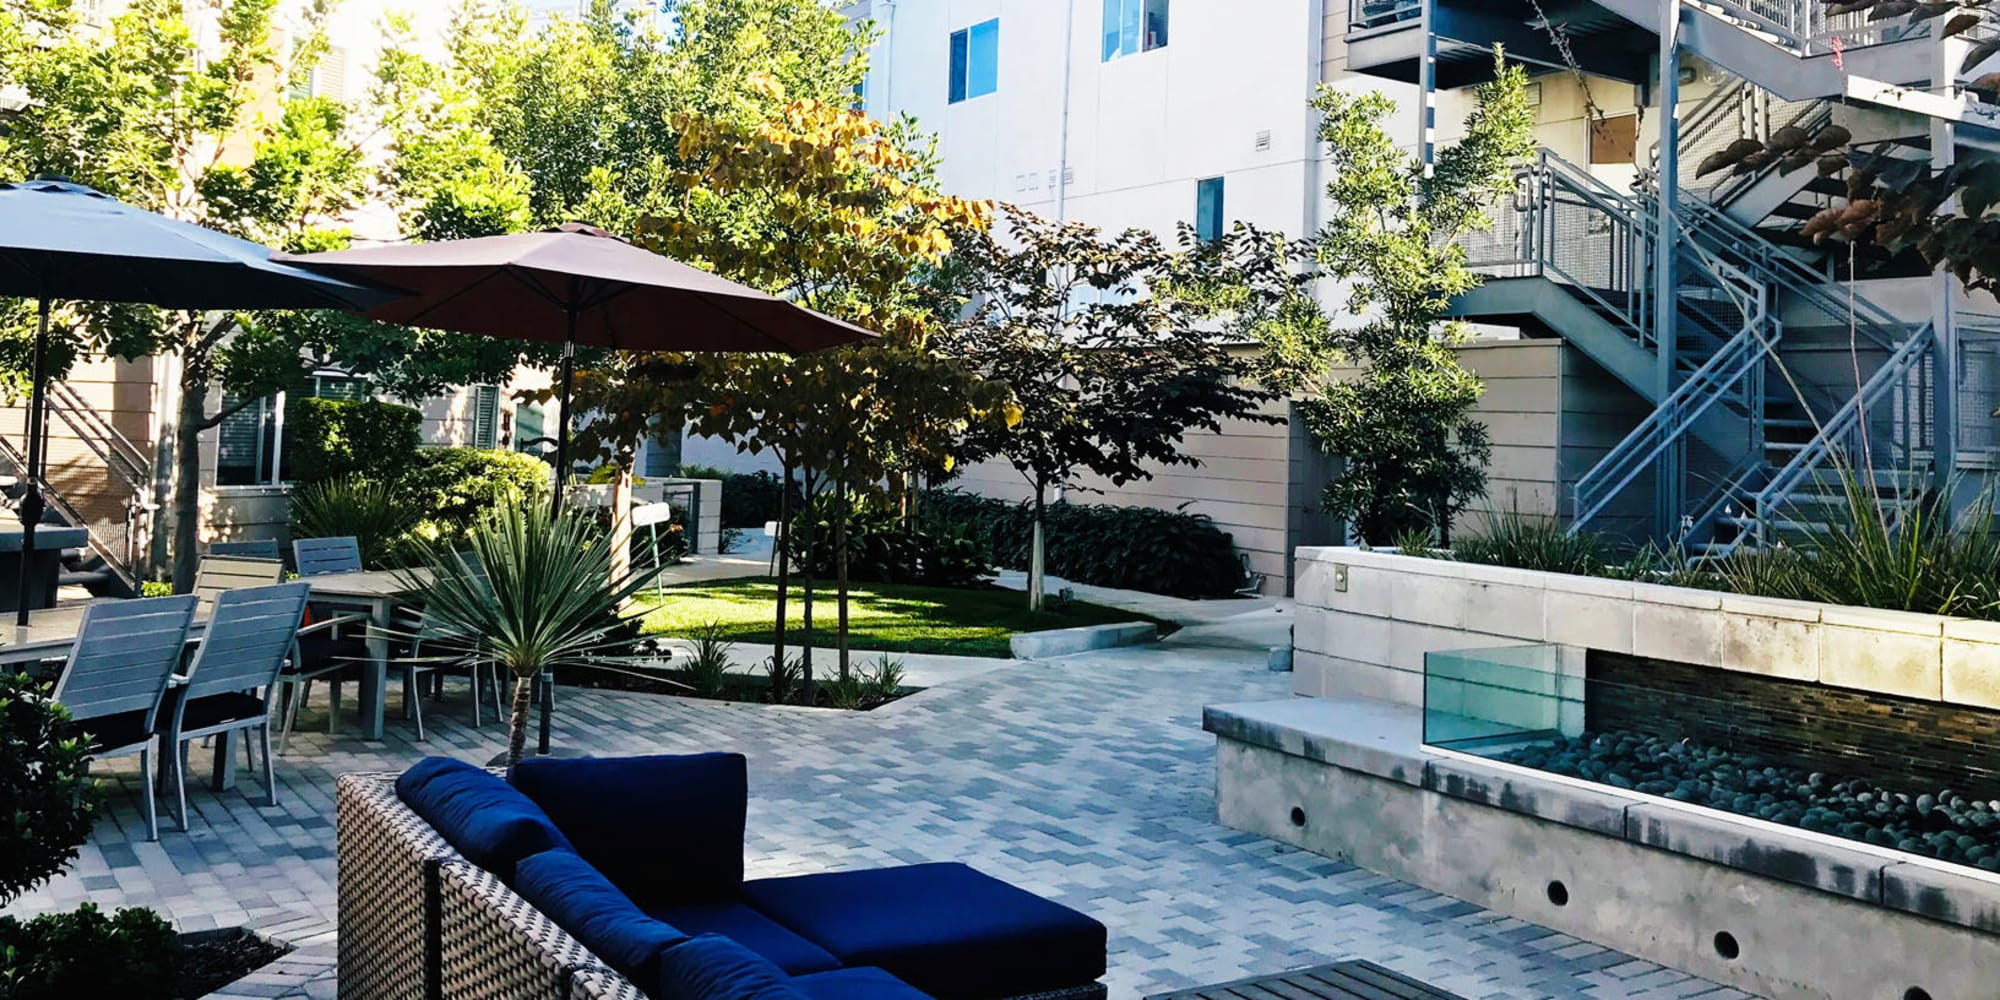 Serene courtyard with mature trees and seating areas at Citron in Ventura, California